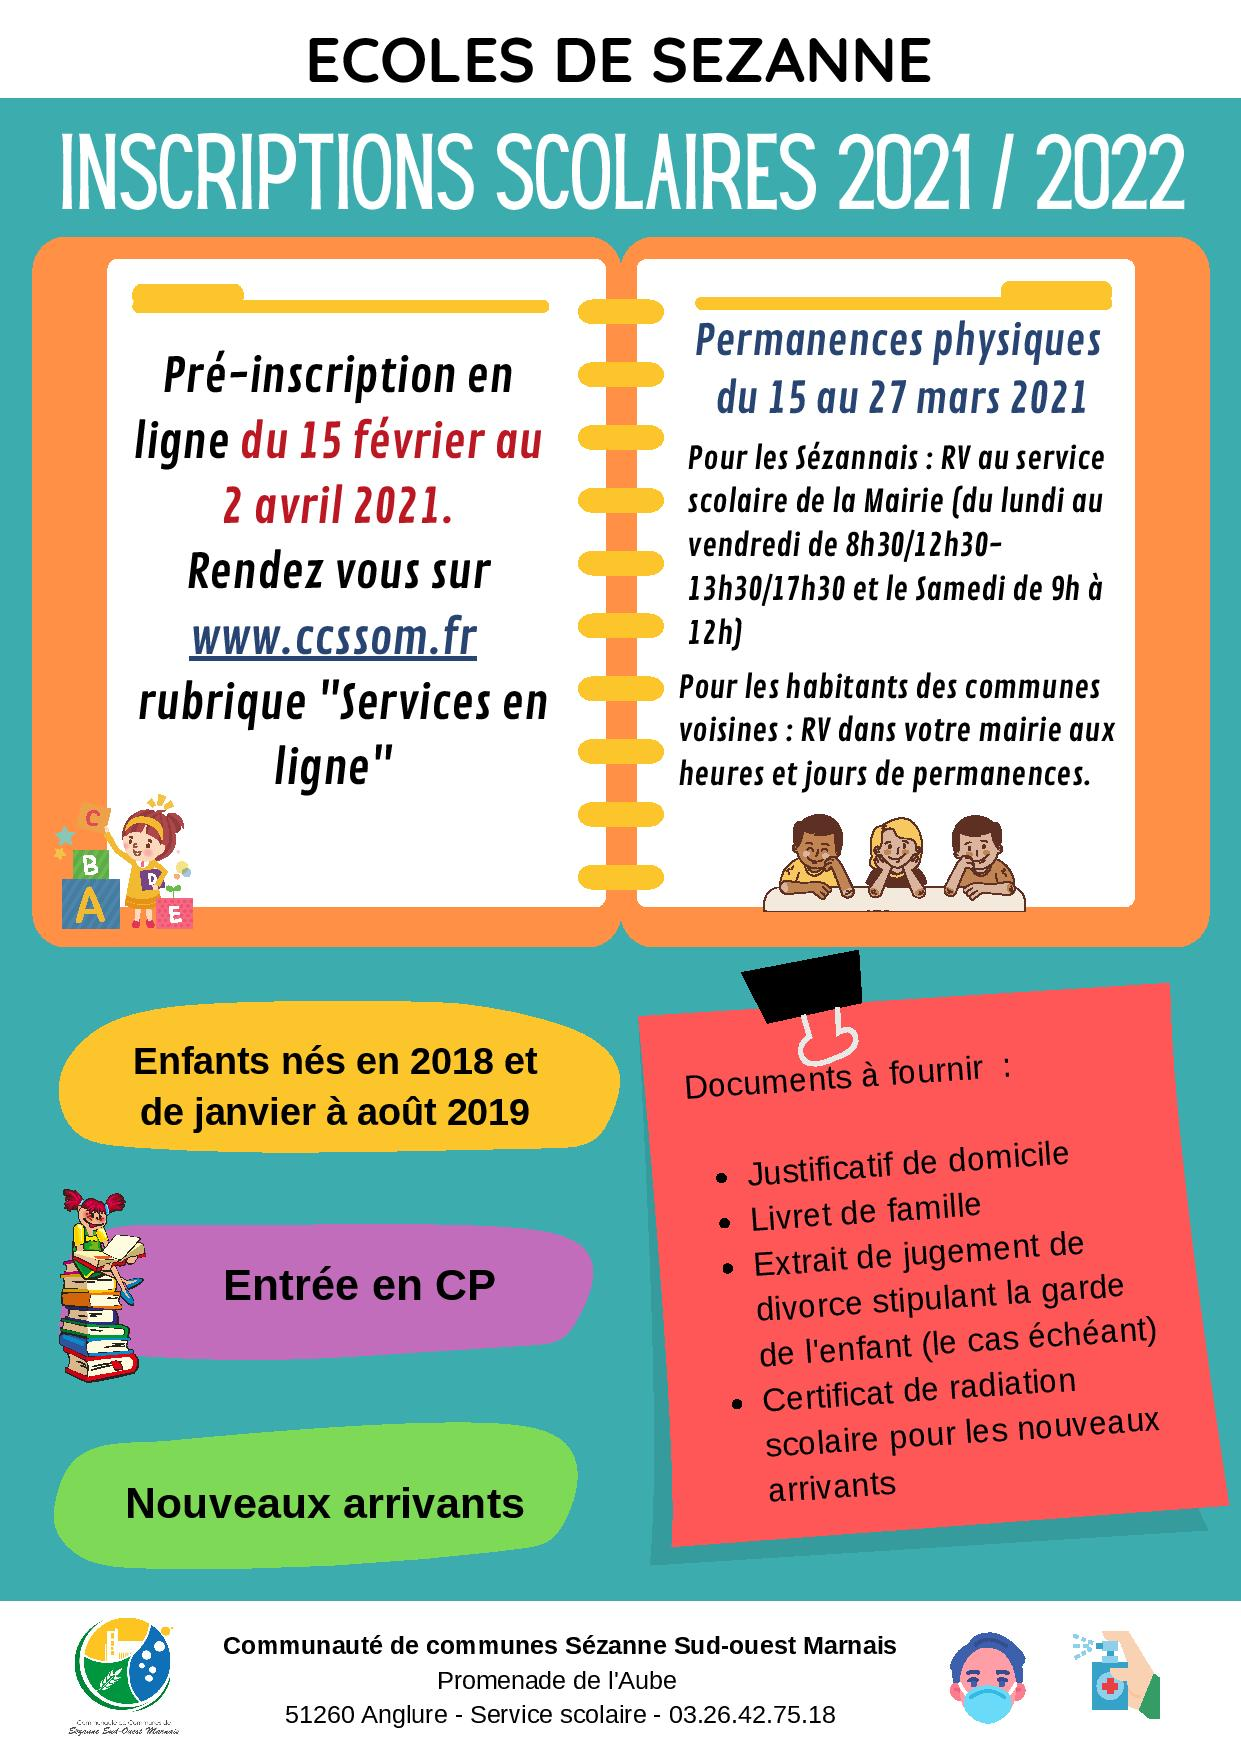 INSCRIPTION SCOLAIRE 2021 2022 SEZANNE 1